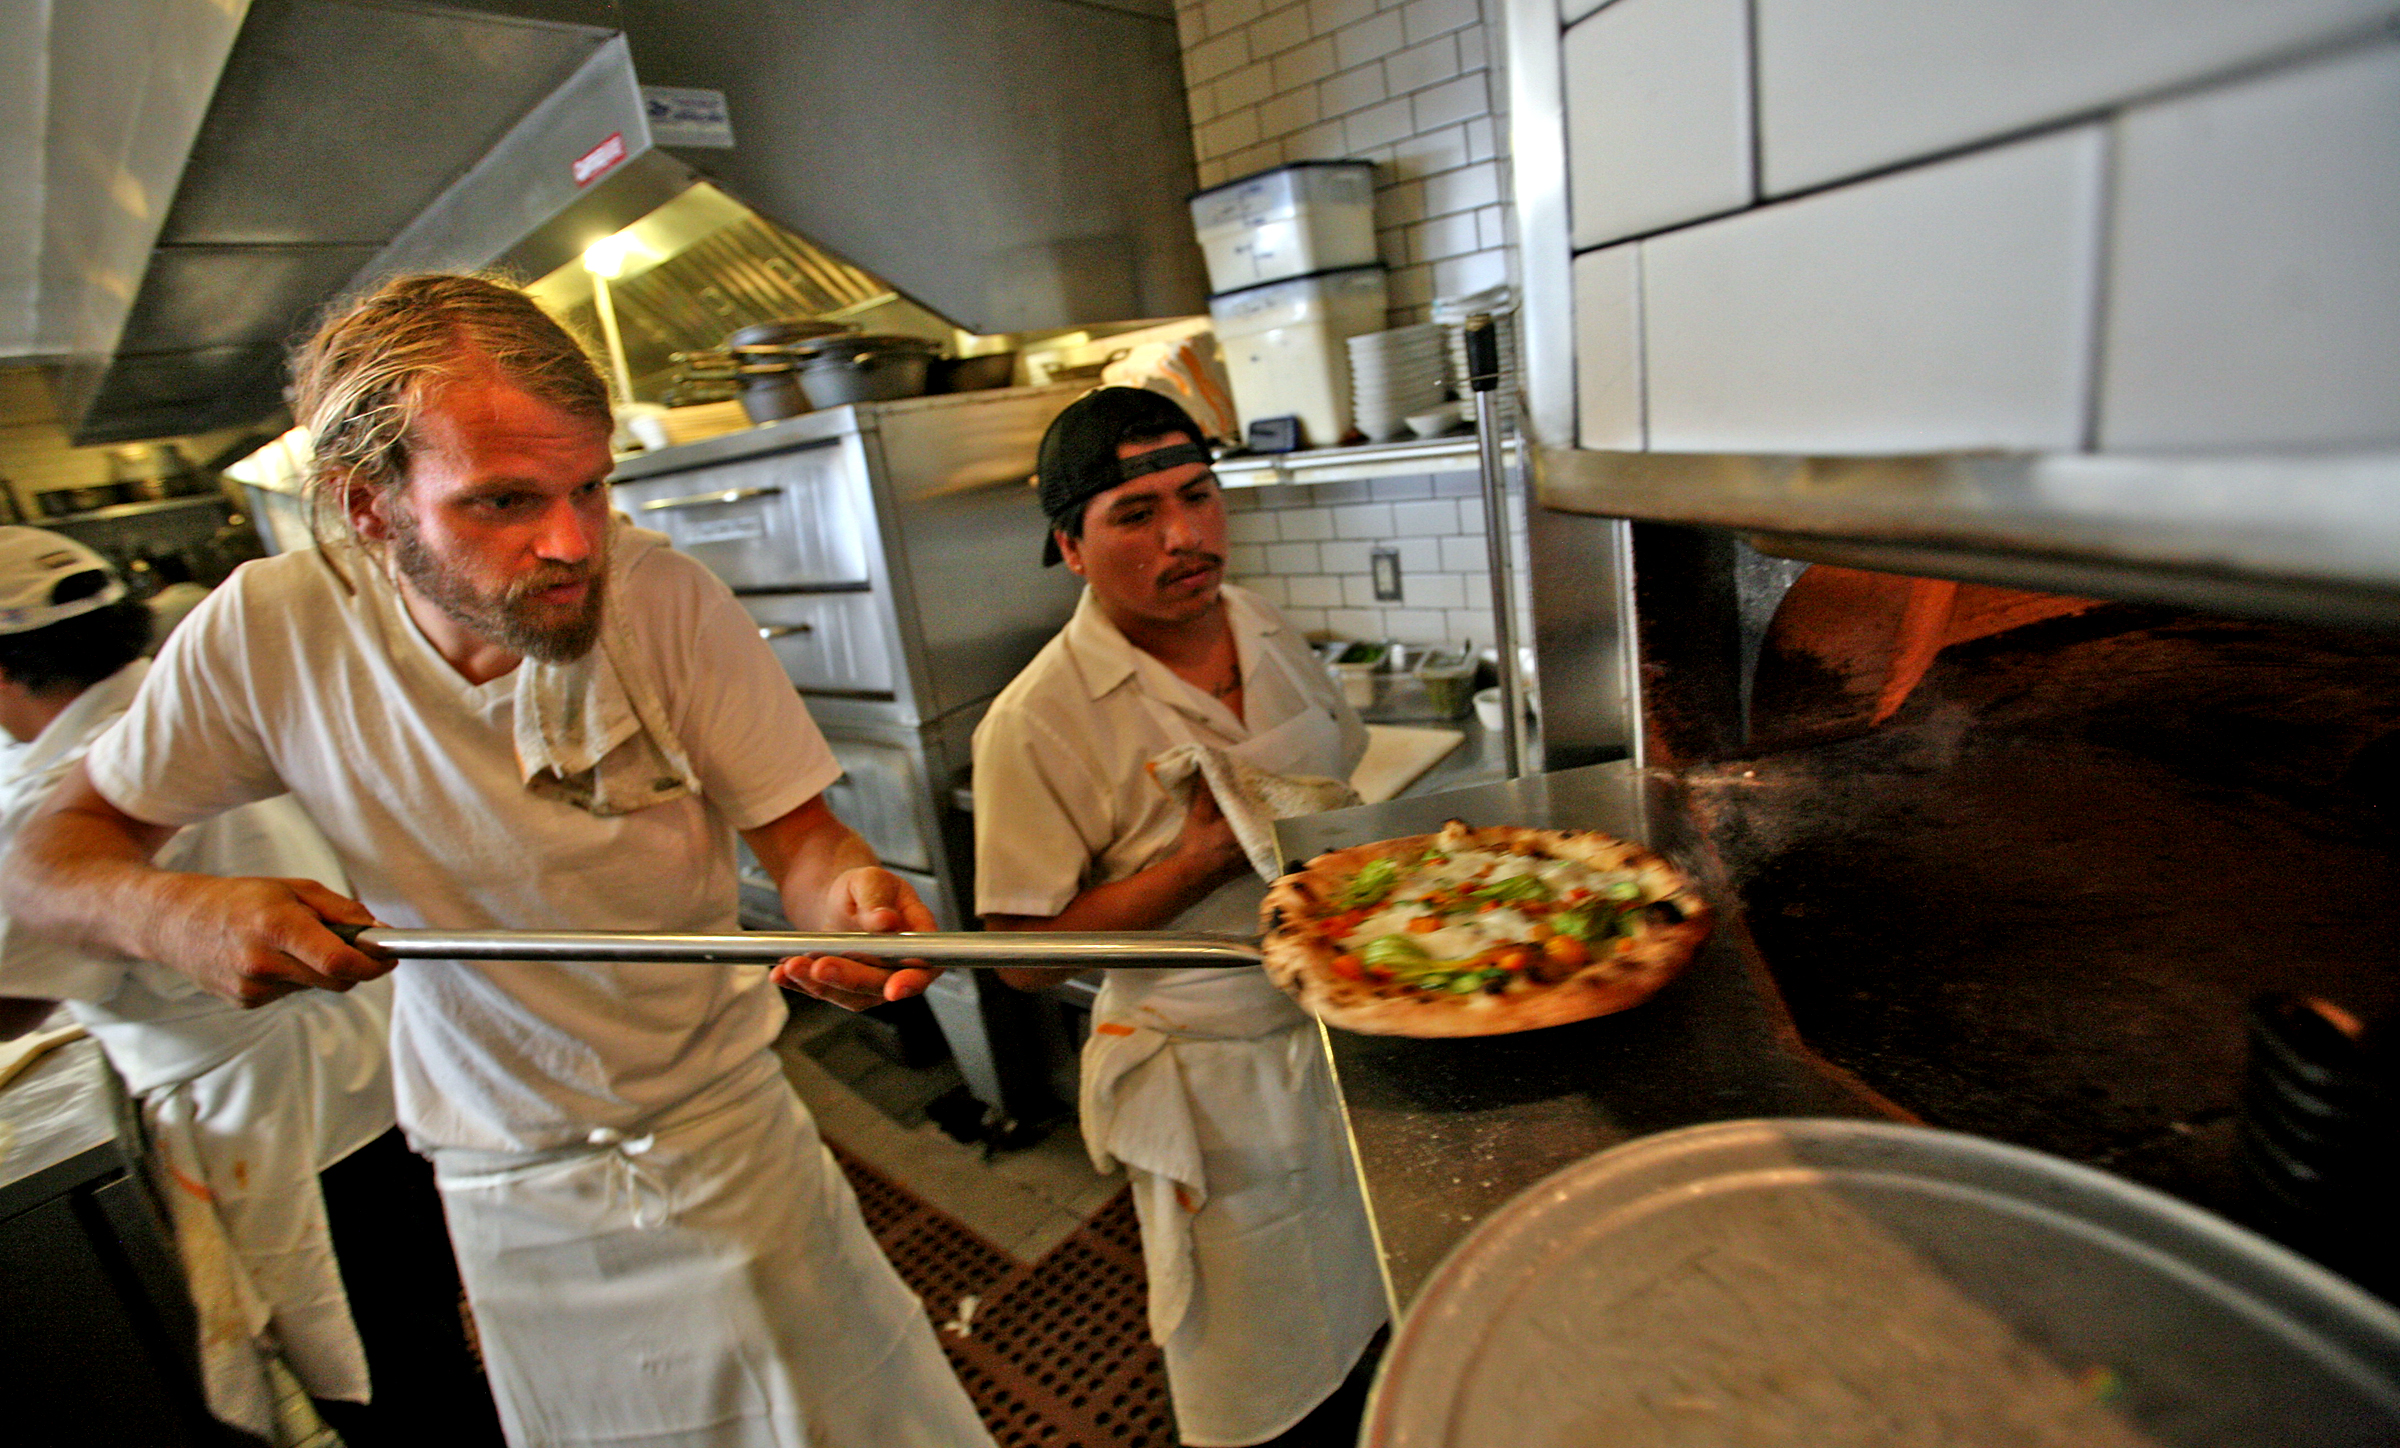 Chef Travis Lett pulls a pizza from the oven, at Gjelina restaurant in Venice on APRIL 27, 2011.